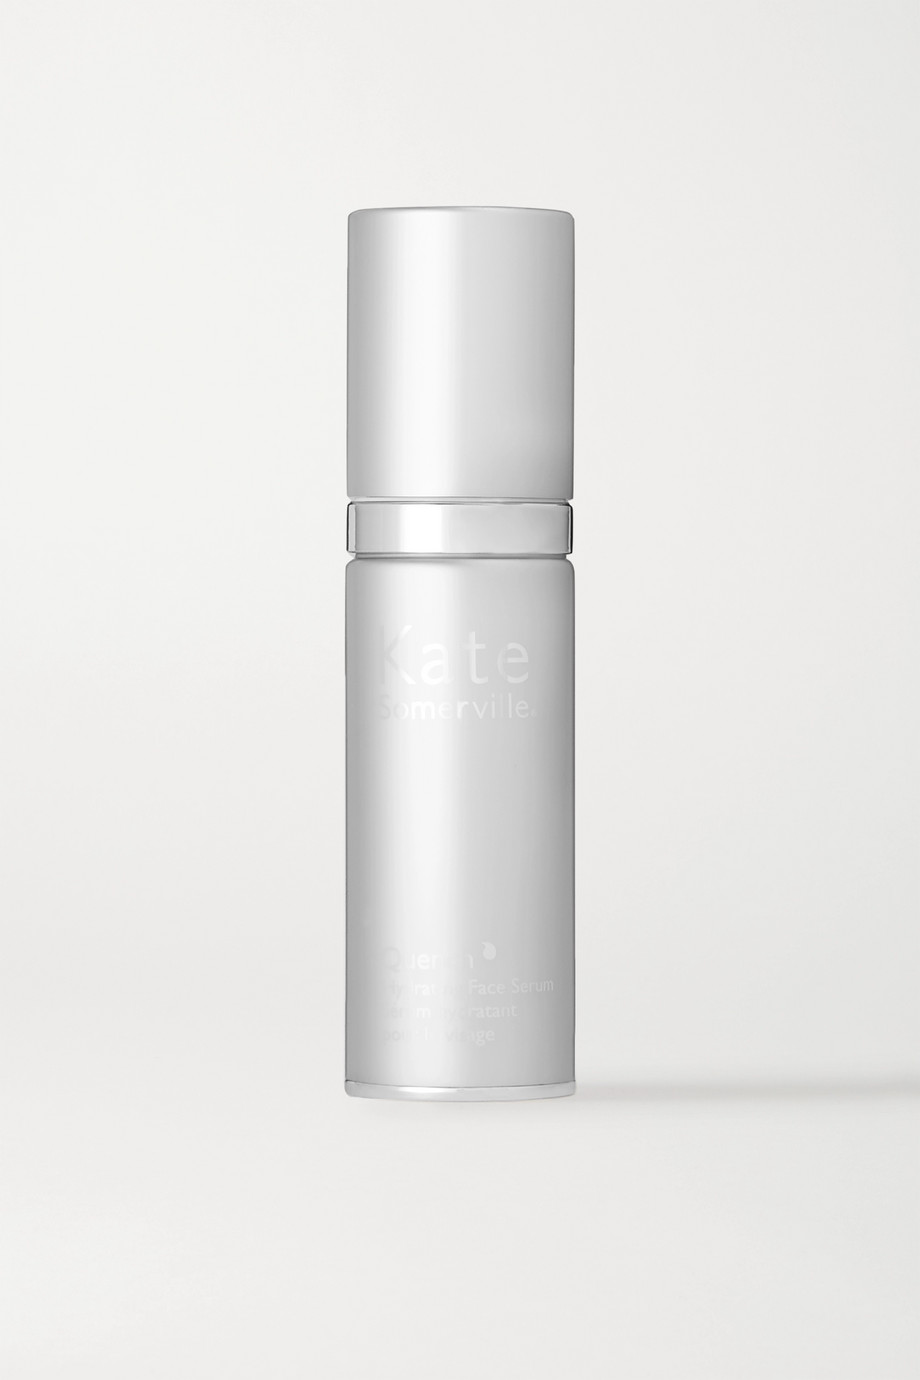 Kate Somerville Quench Hydrating Face Serum, 30ml